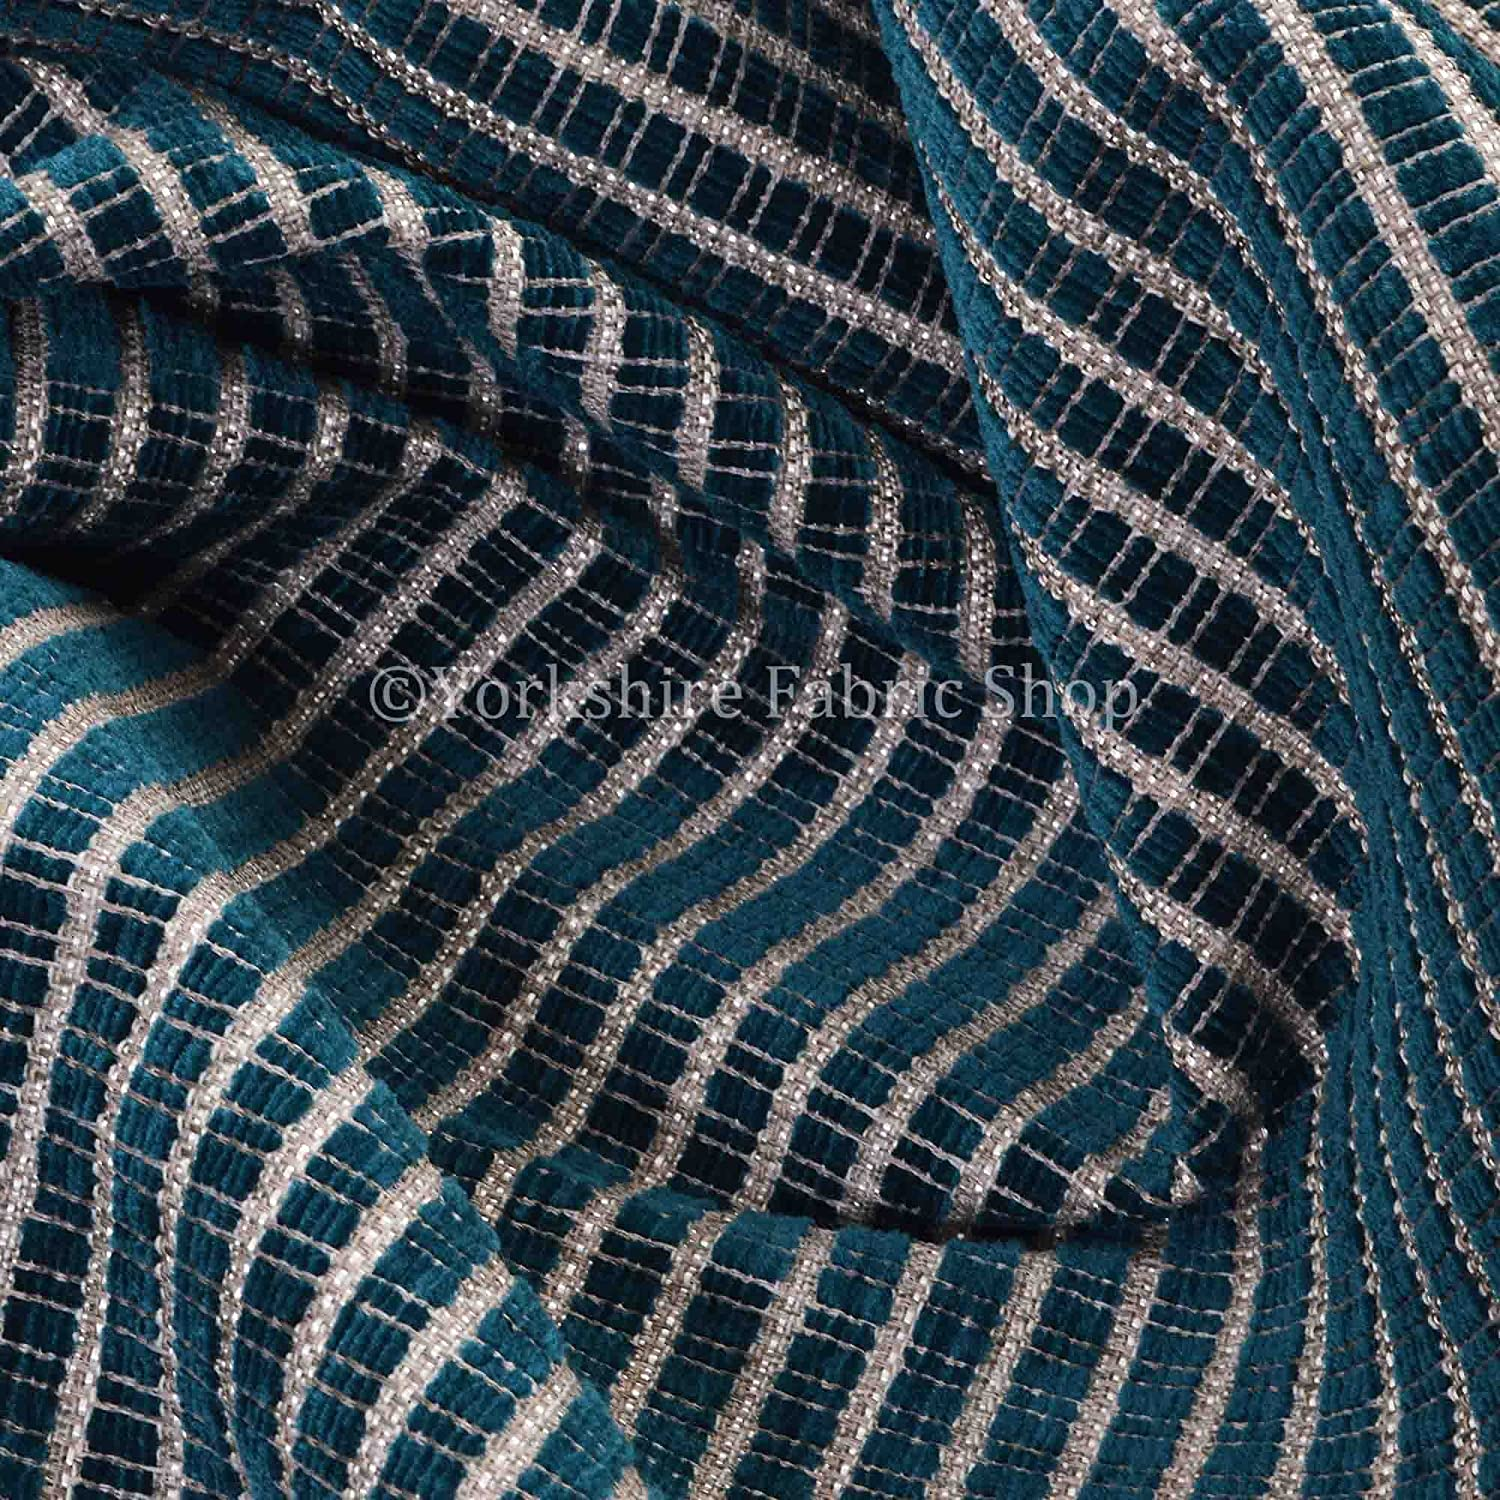 Textured Weave Hopsack Chenille Soft Upholstery Curtain Sofa Material Fabric In Teal Blue